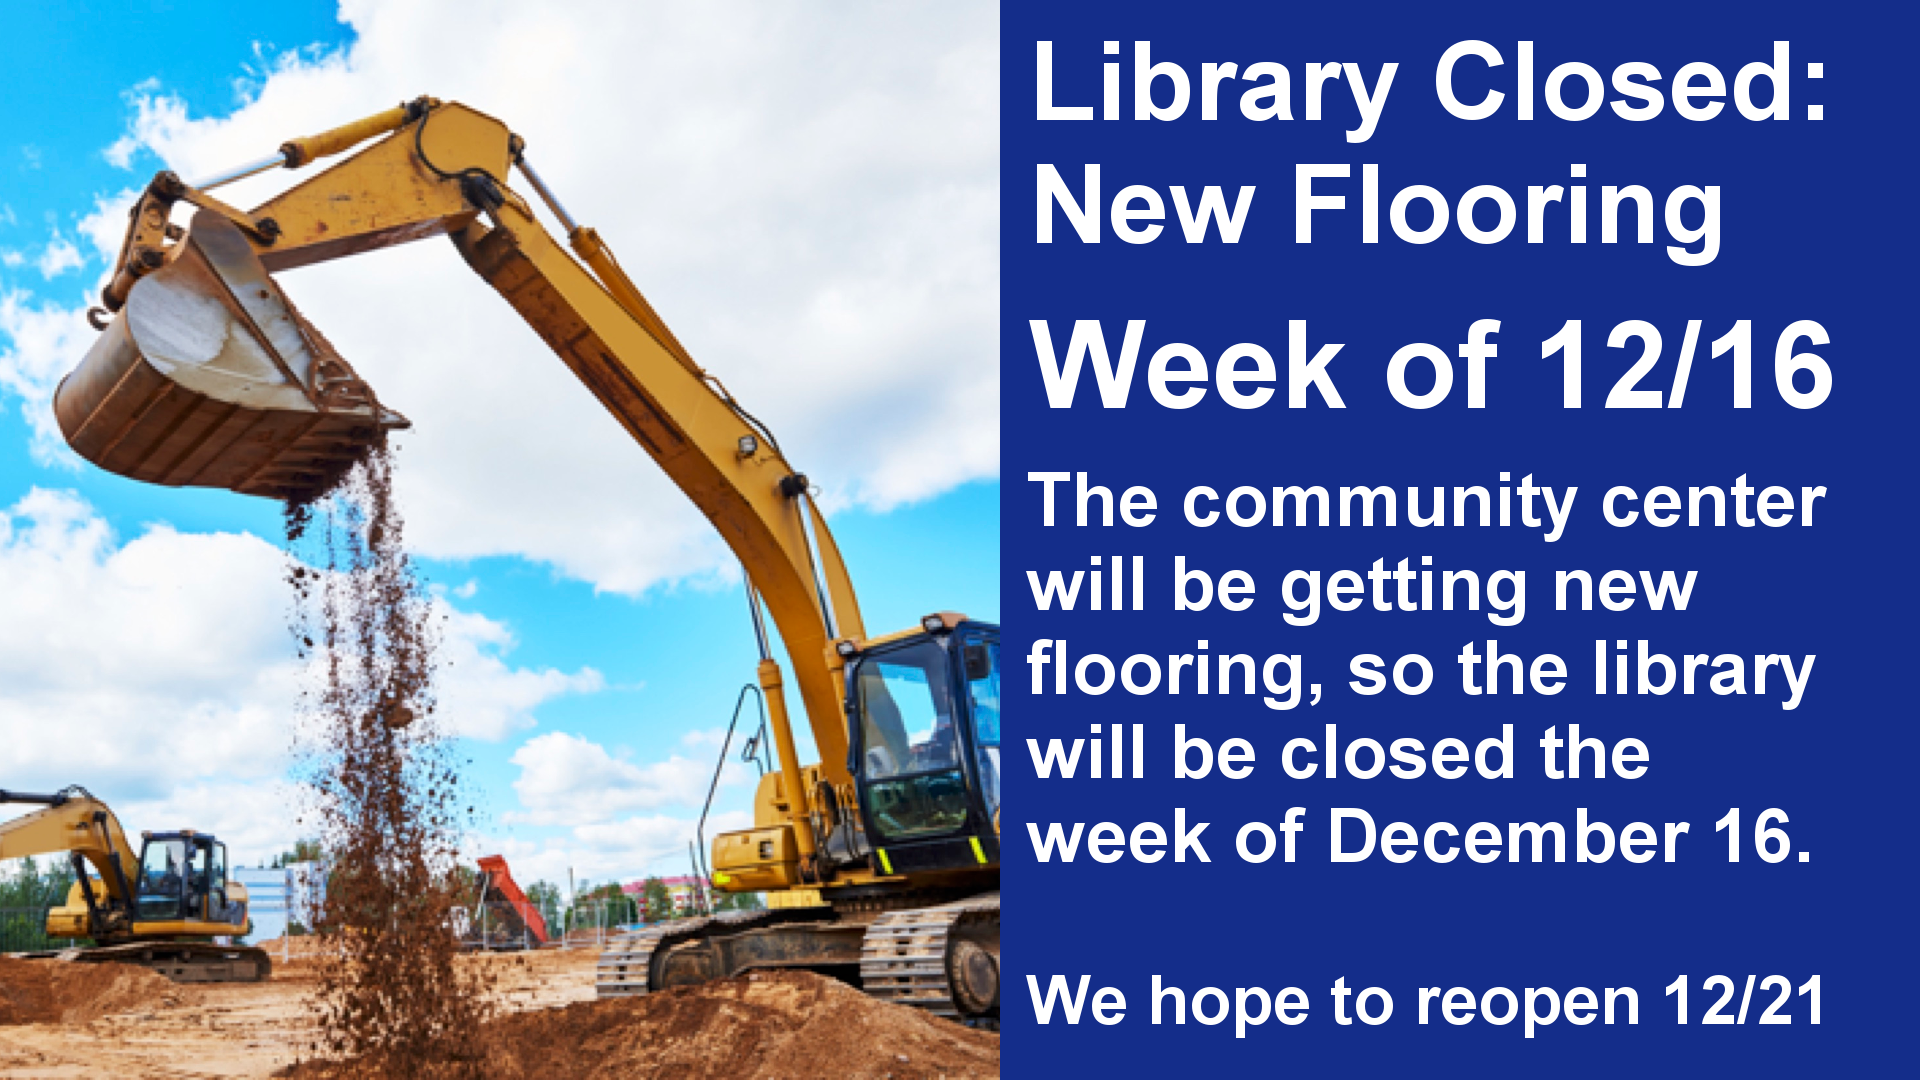 Library Closed: New Flooring Week of 12/16 The community center will be getting new flooring, so the library will be closed the week of December 16.  We hope to reopen 12/21